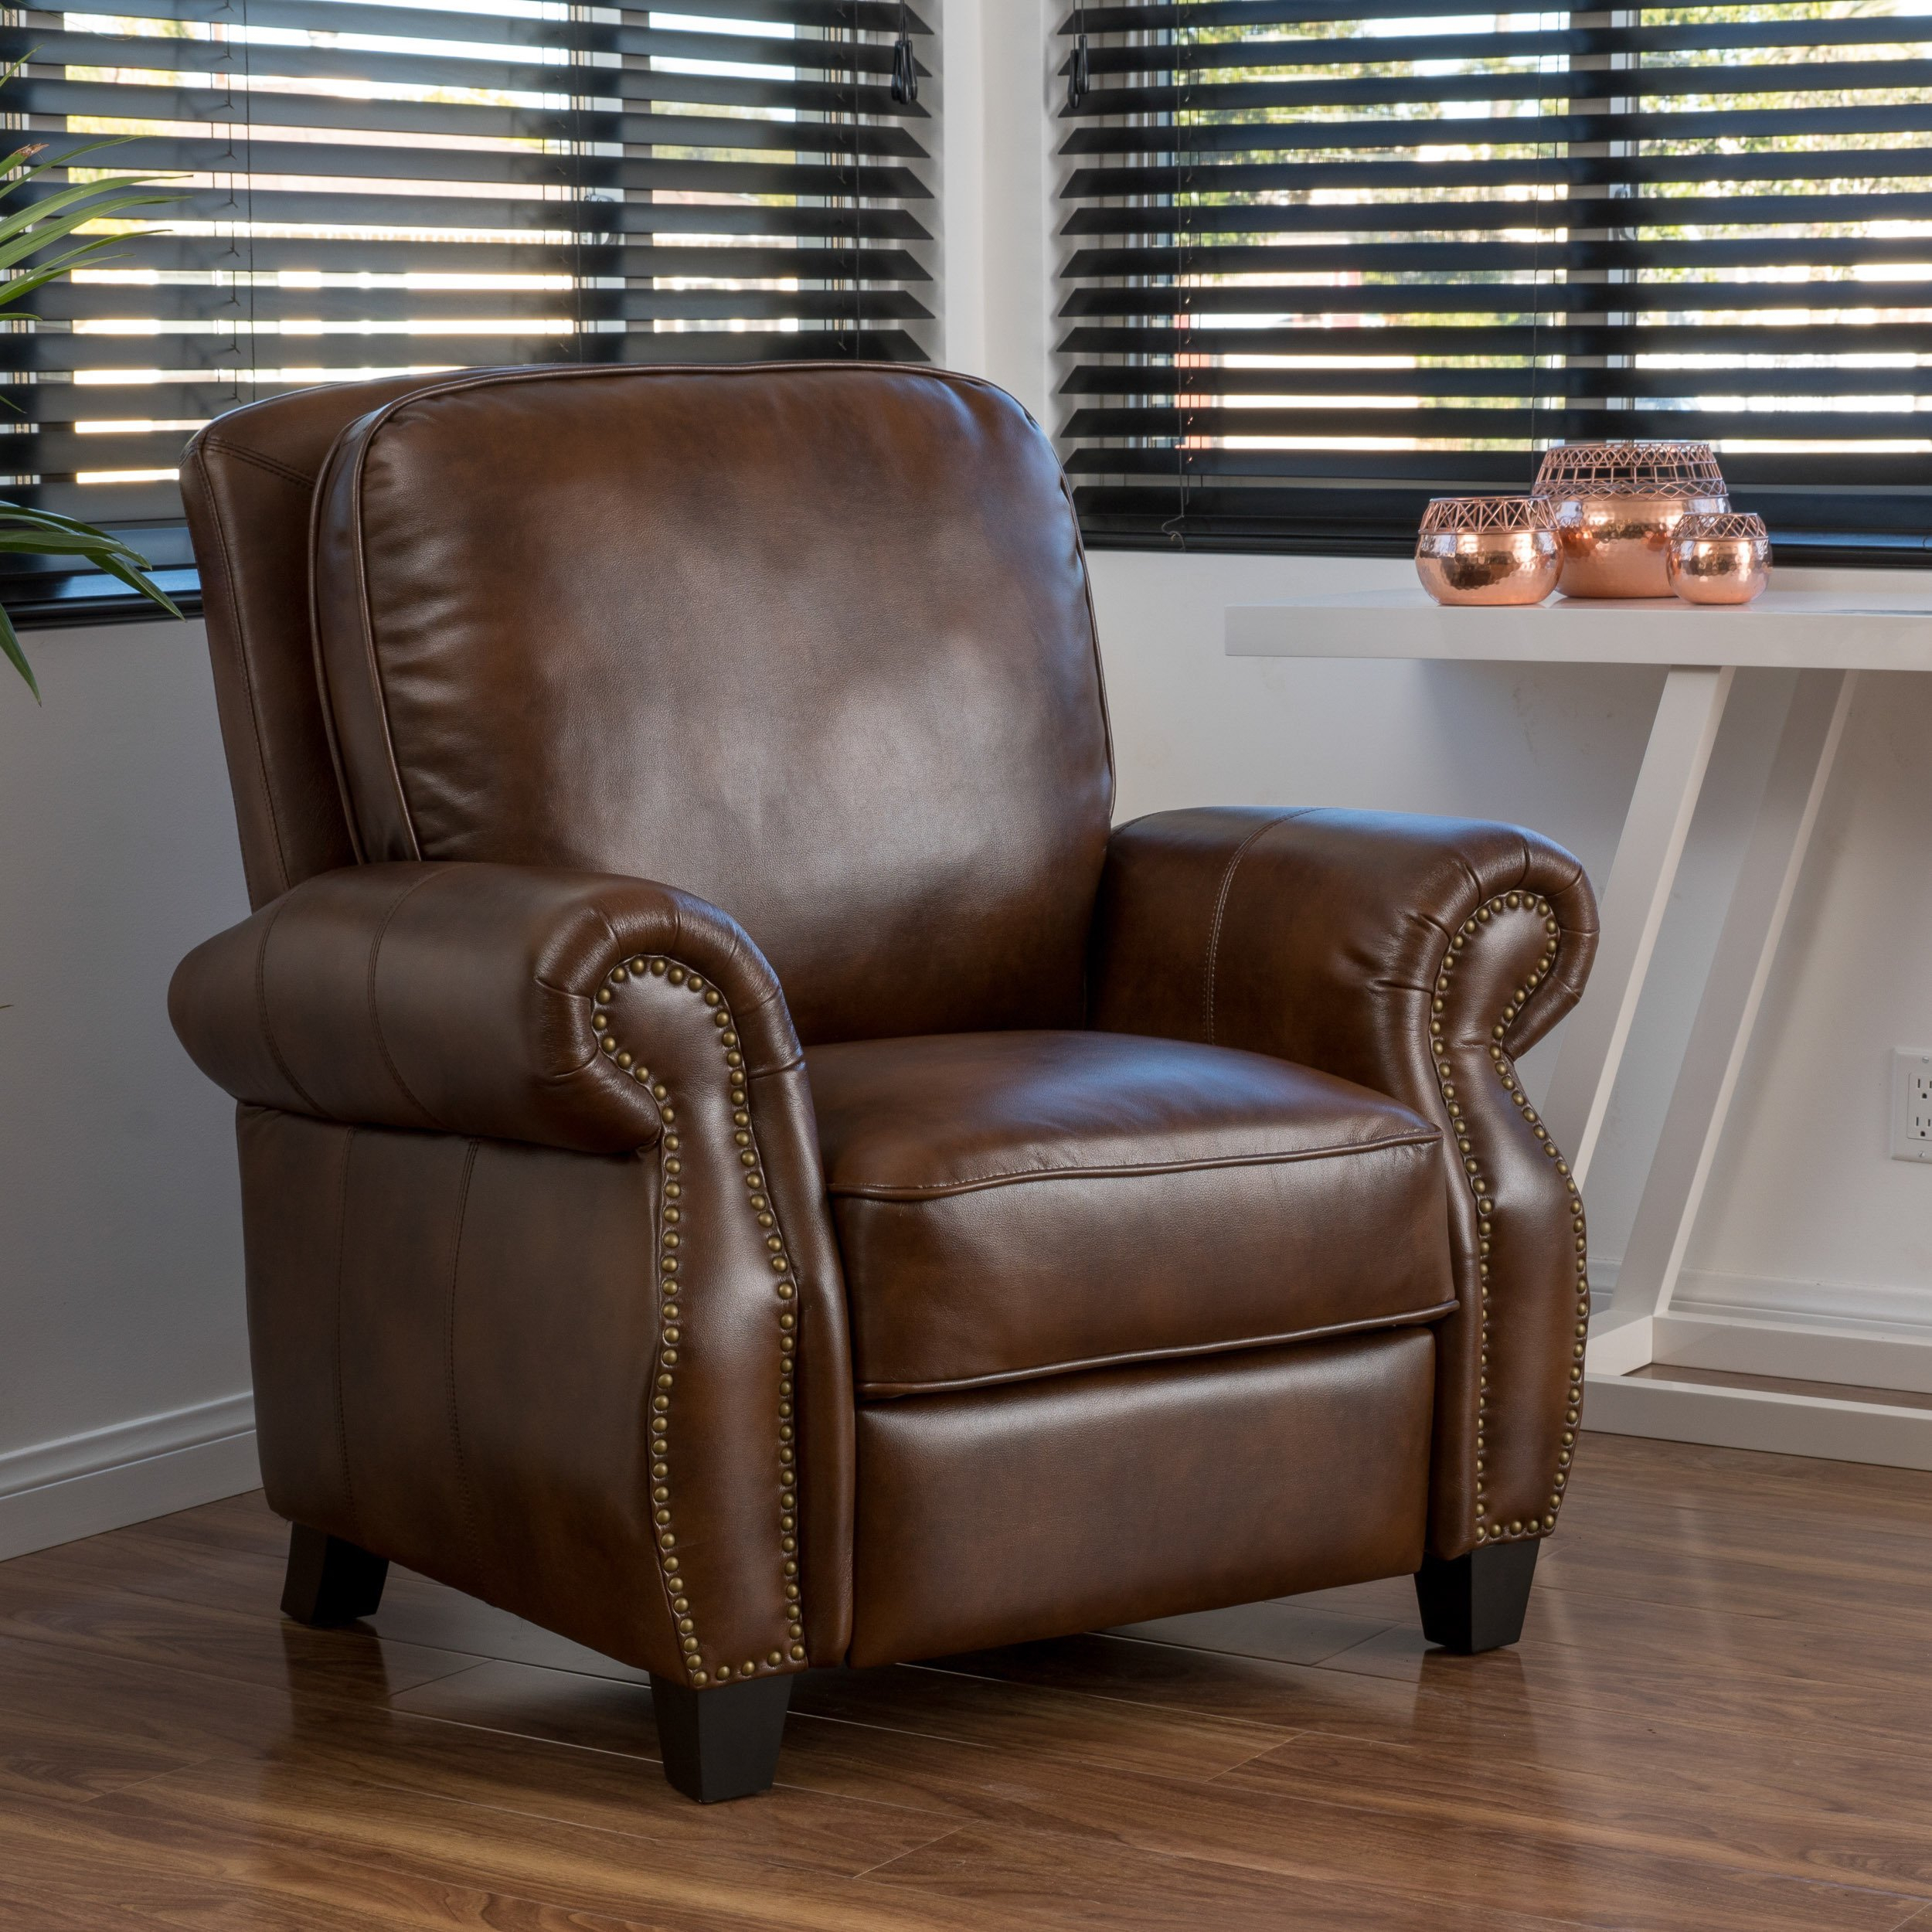 Buy Brown Christopher Knight Home Living Room Chairs Online At Within Dale Iii Polyurethane Swivel Glider Recliners (Image 7 of 25)